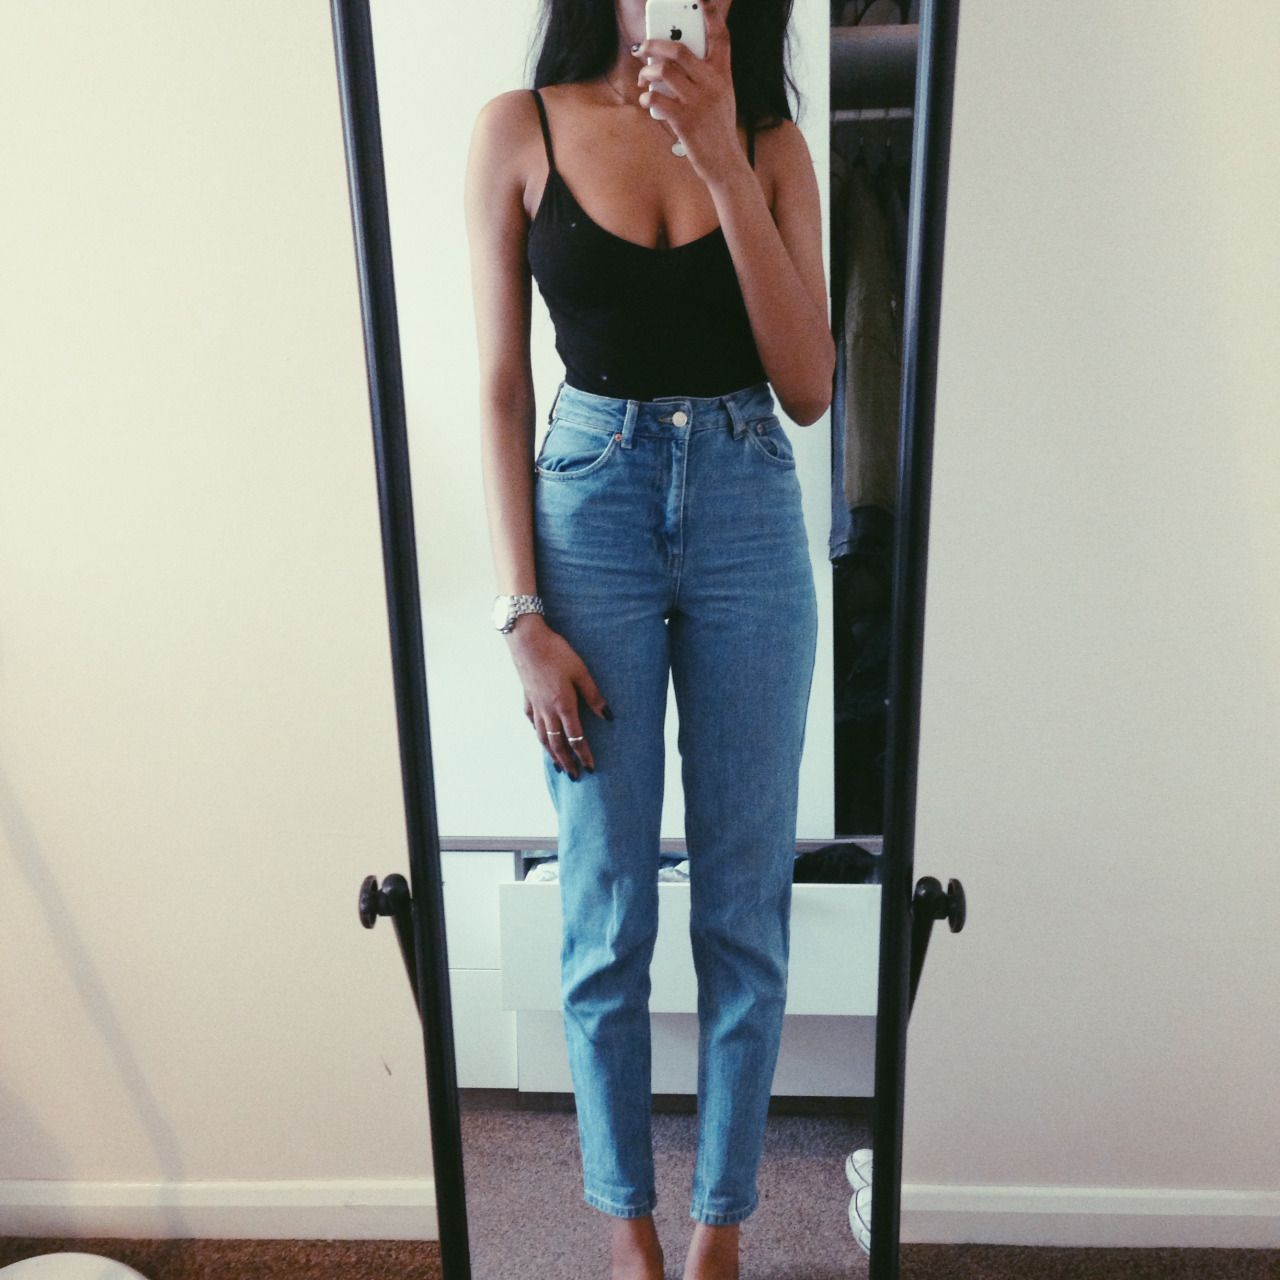 d683a485f4 topshop moto mom jeans   asos cami body outfit idea  vintage style high  waisted mom jeans with a camisole bodysuit top